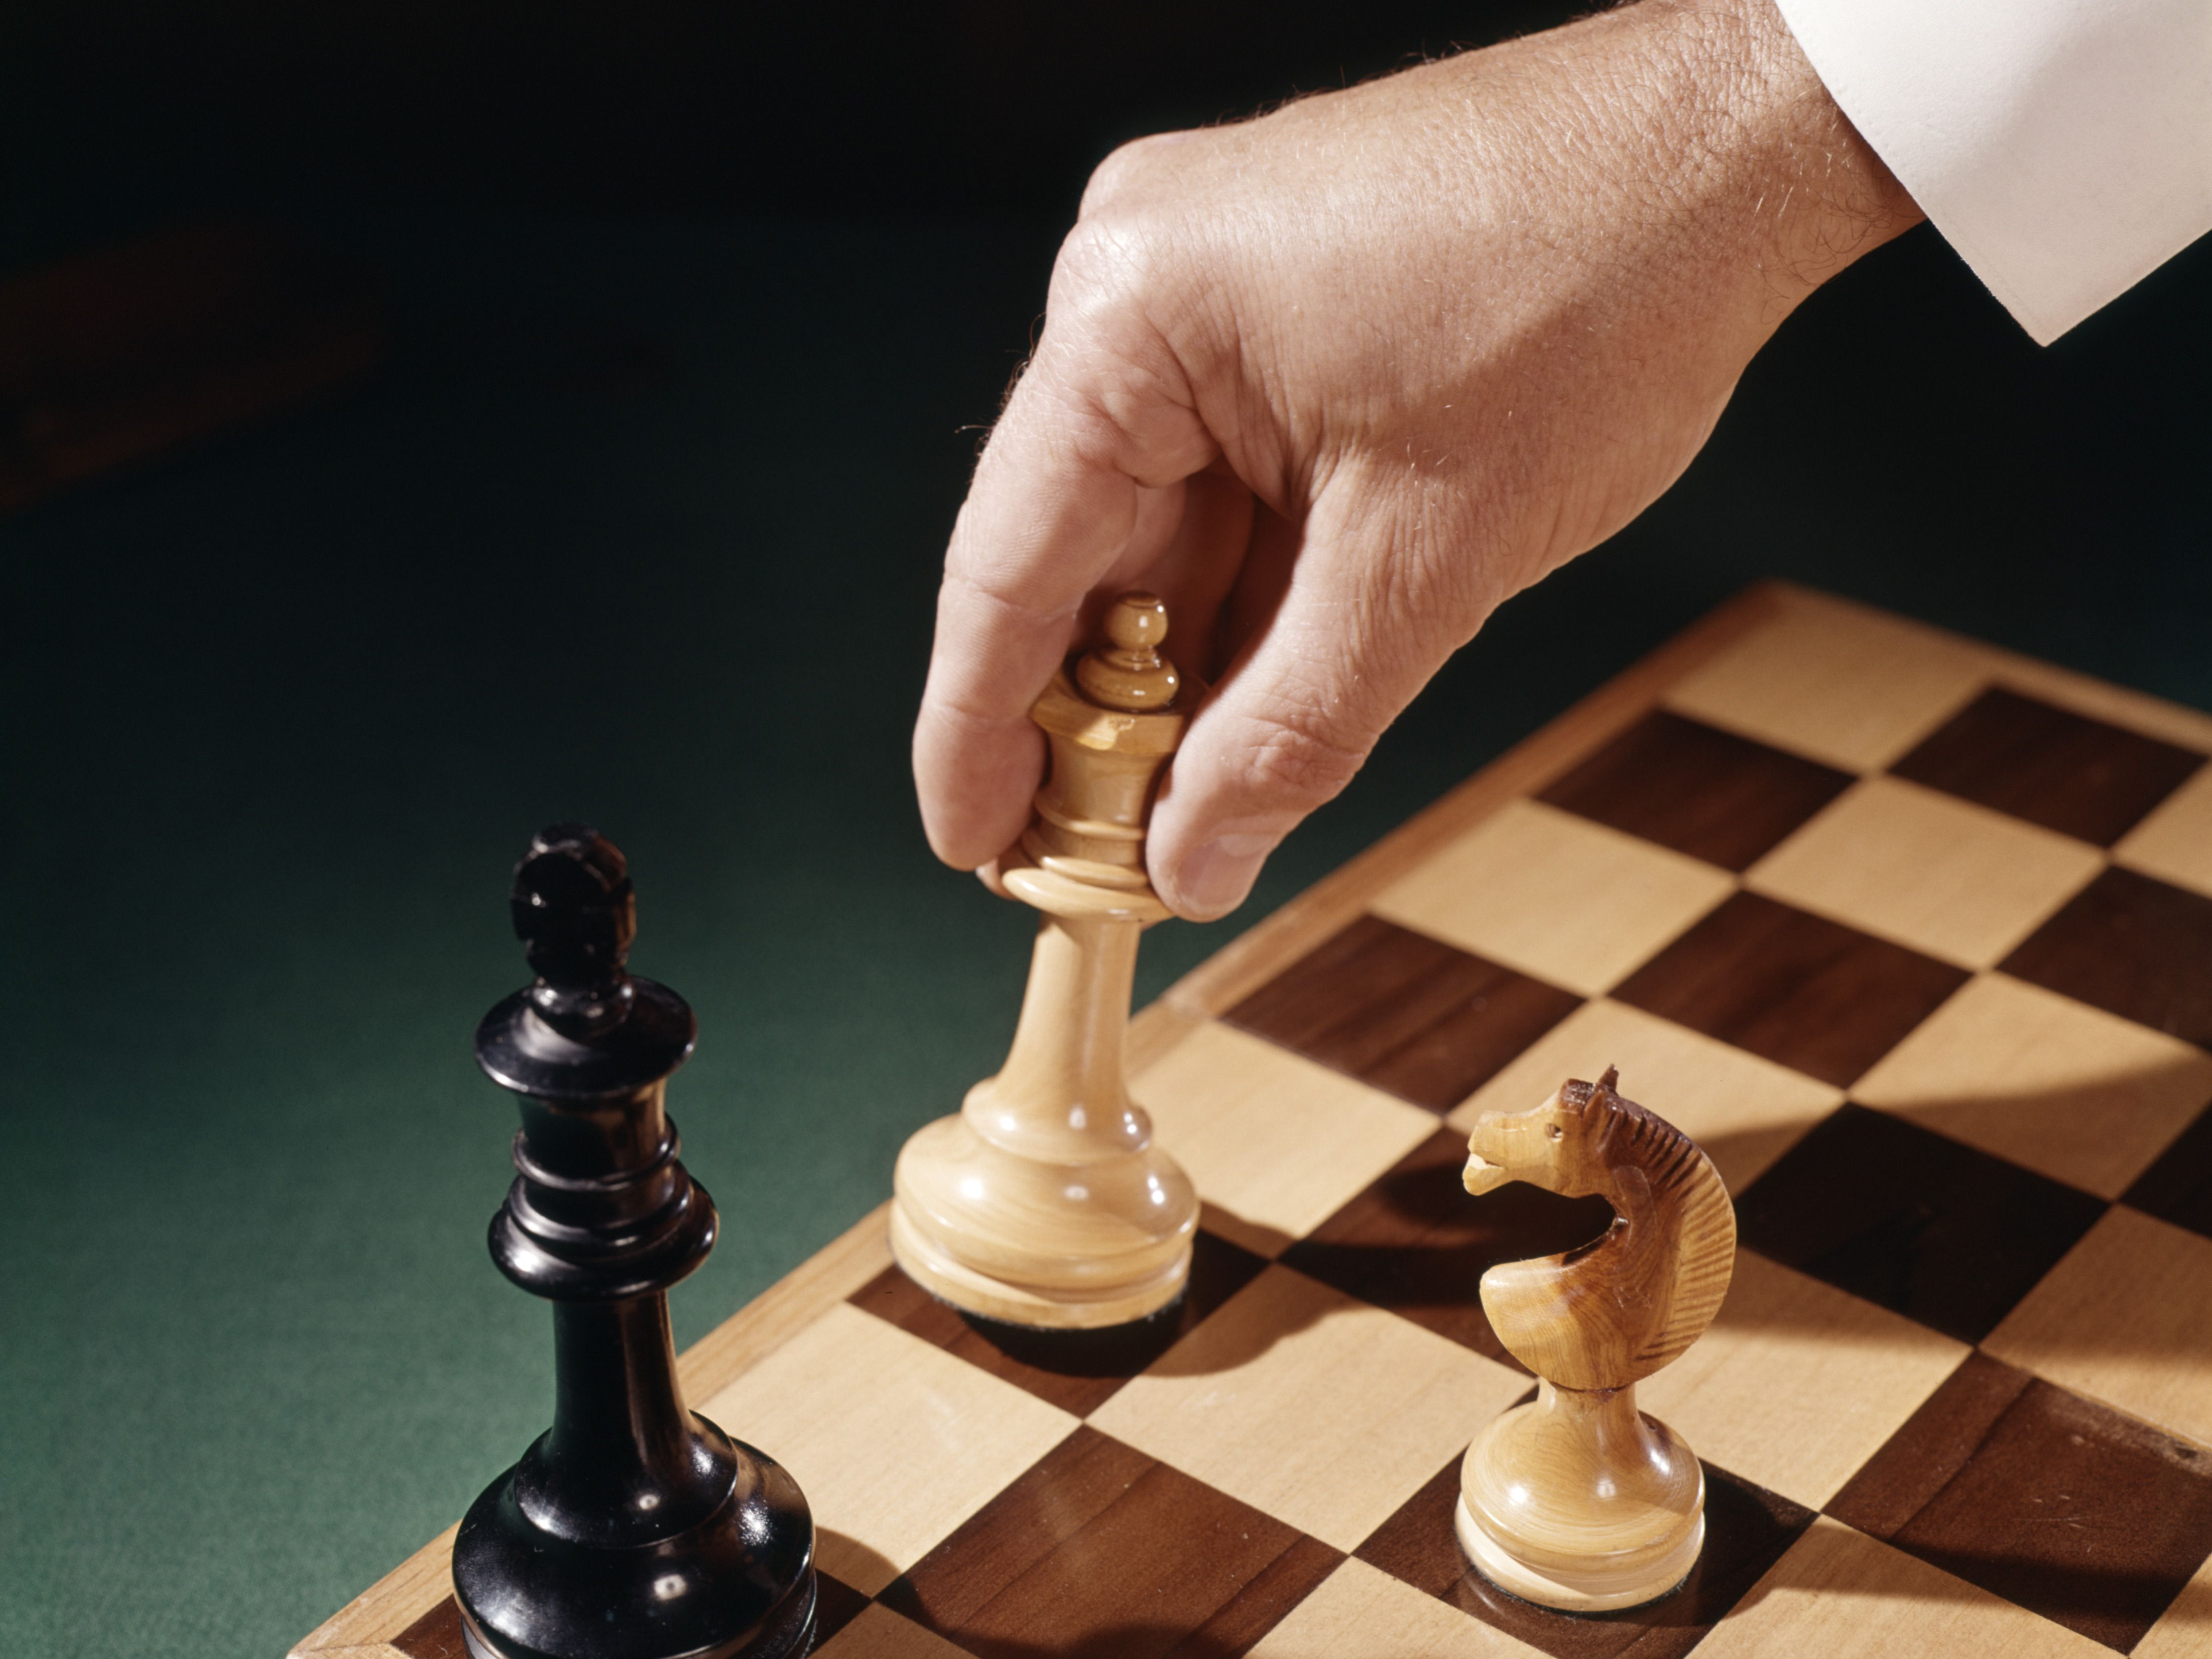 can i checkmate with